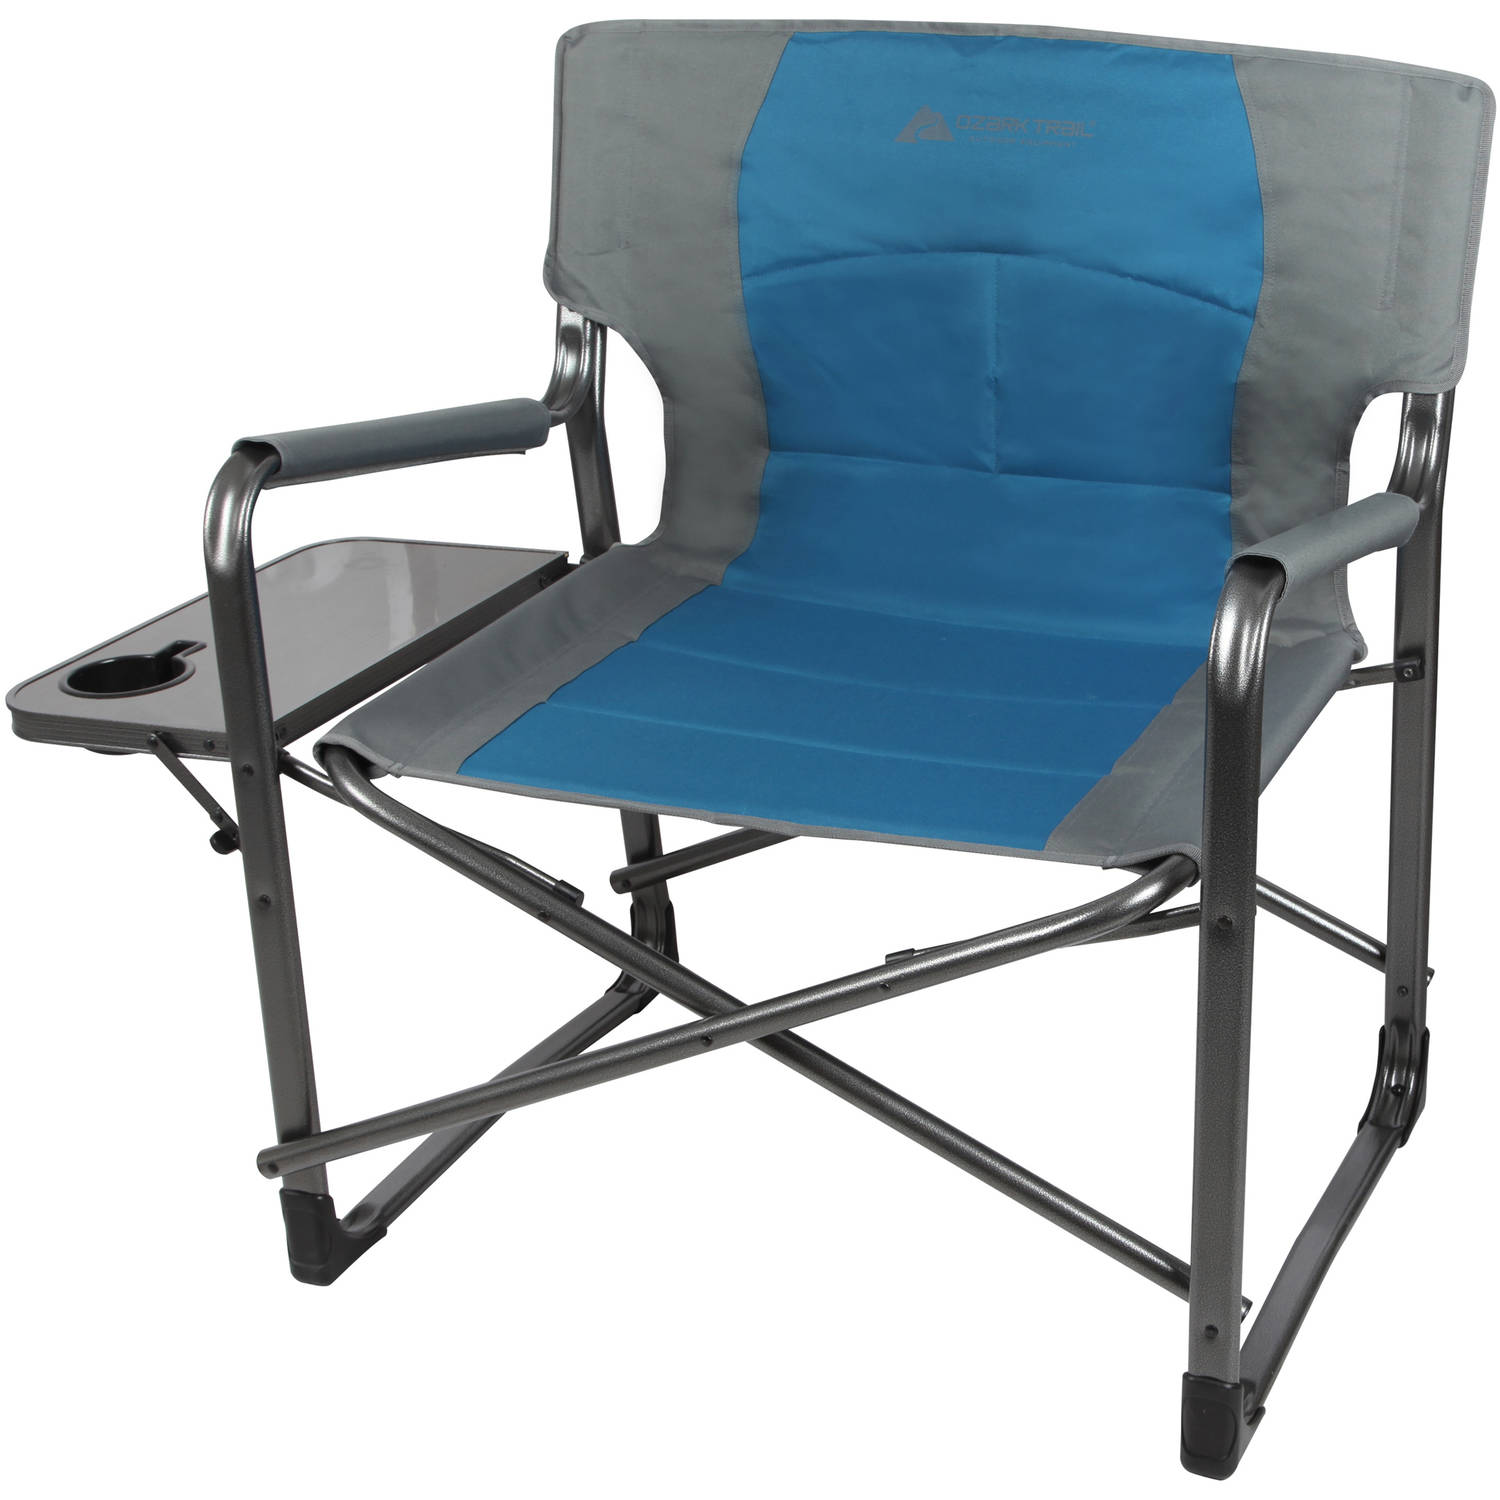 NEW 600 LBS Oversized Camping Director Chair Outdoor Folding